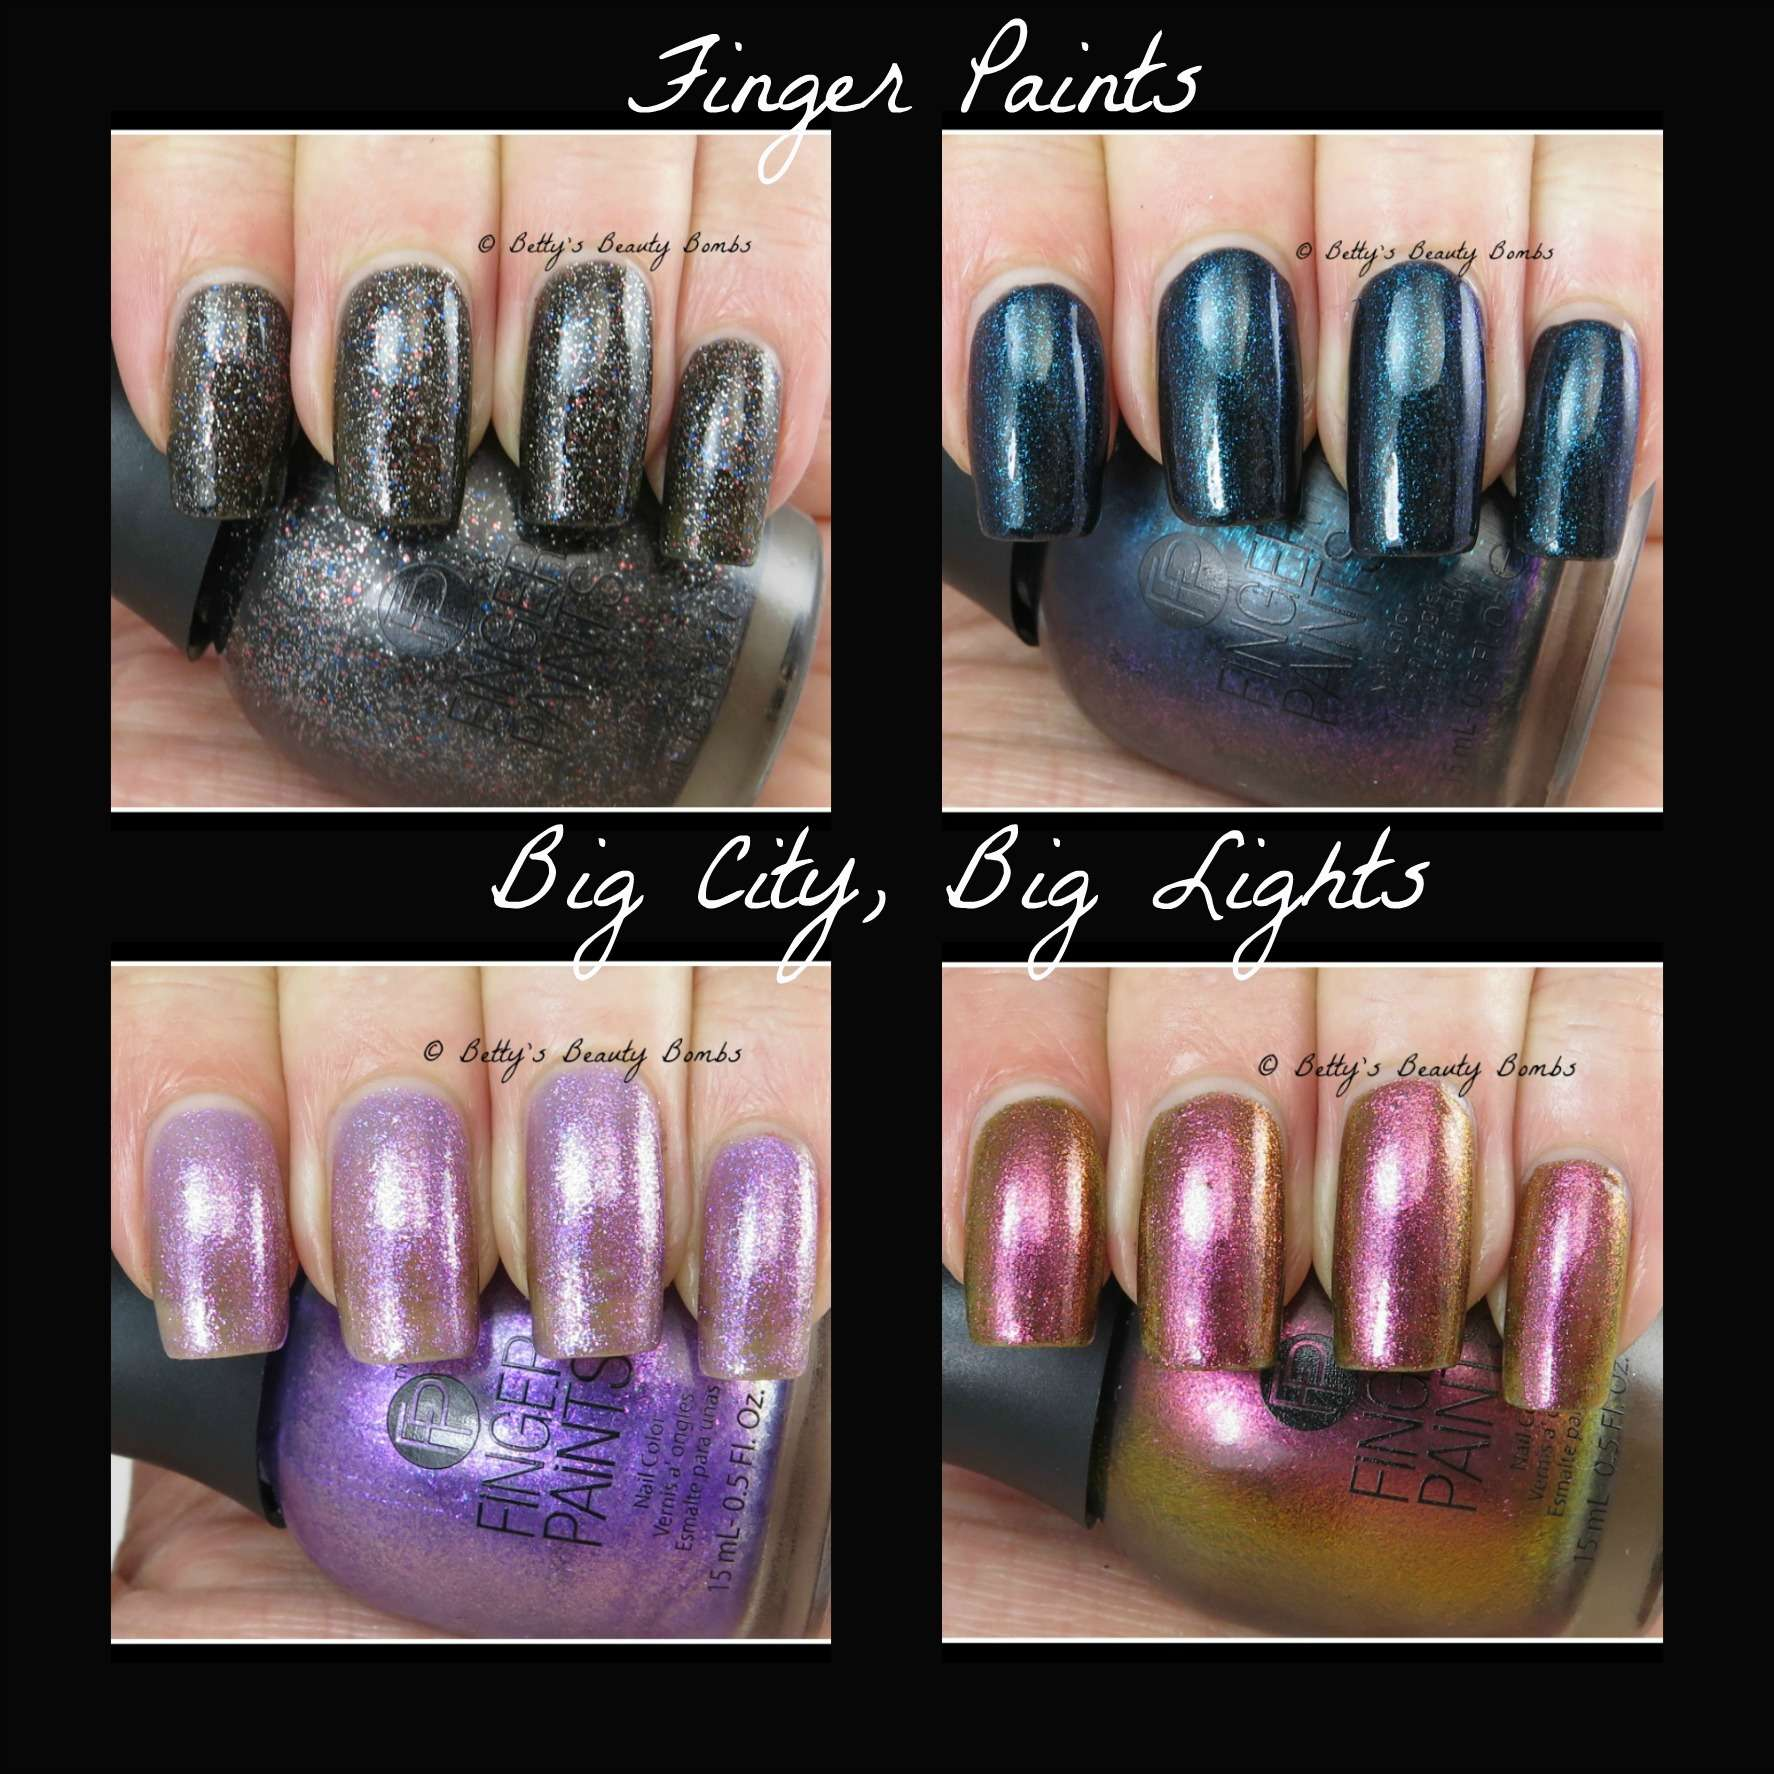 Finger Paints Bright Lights Big City Swatches - Lazy Betty